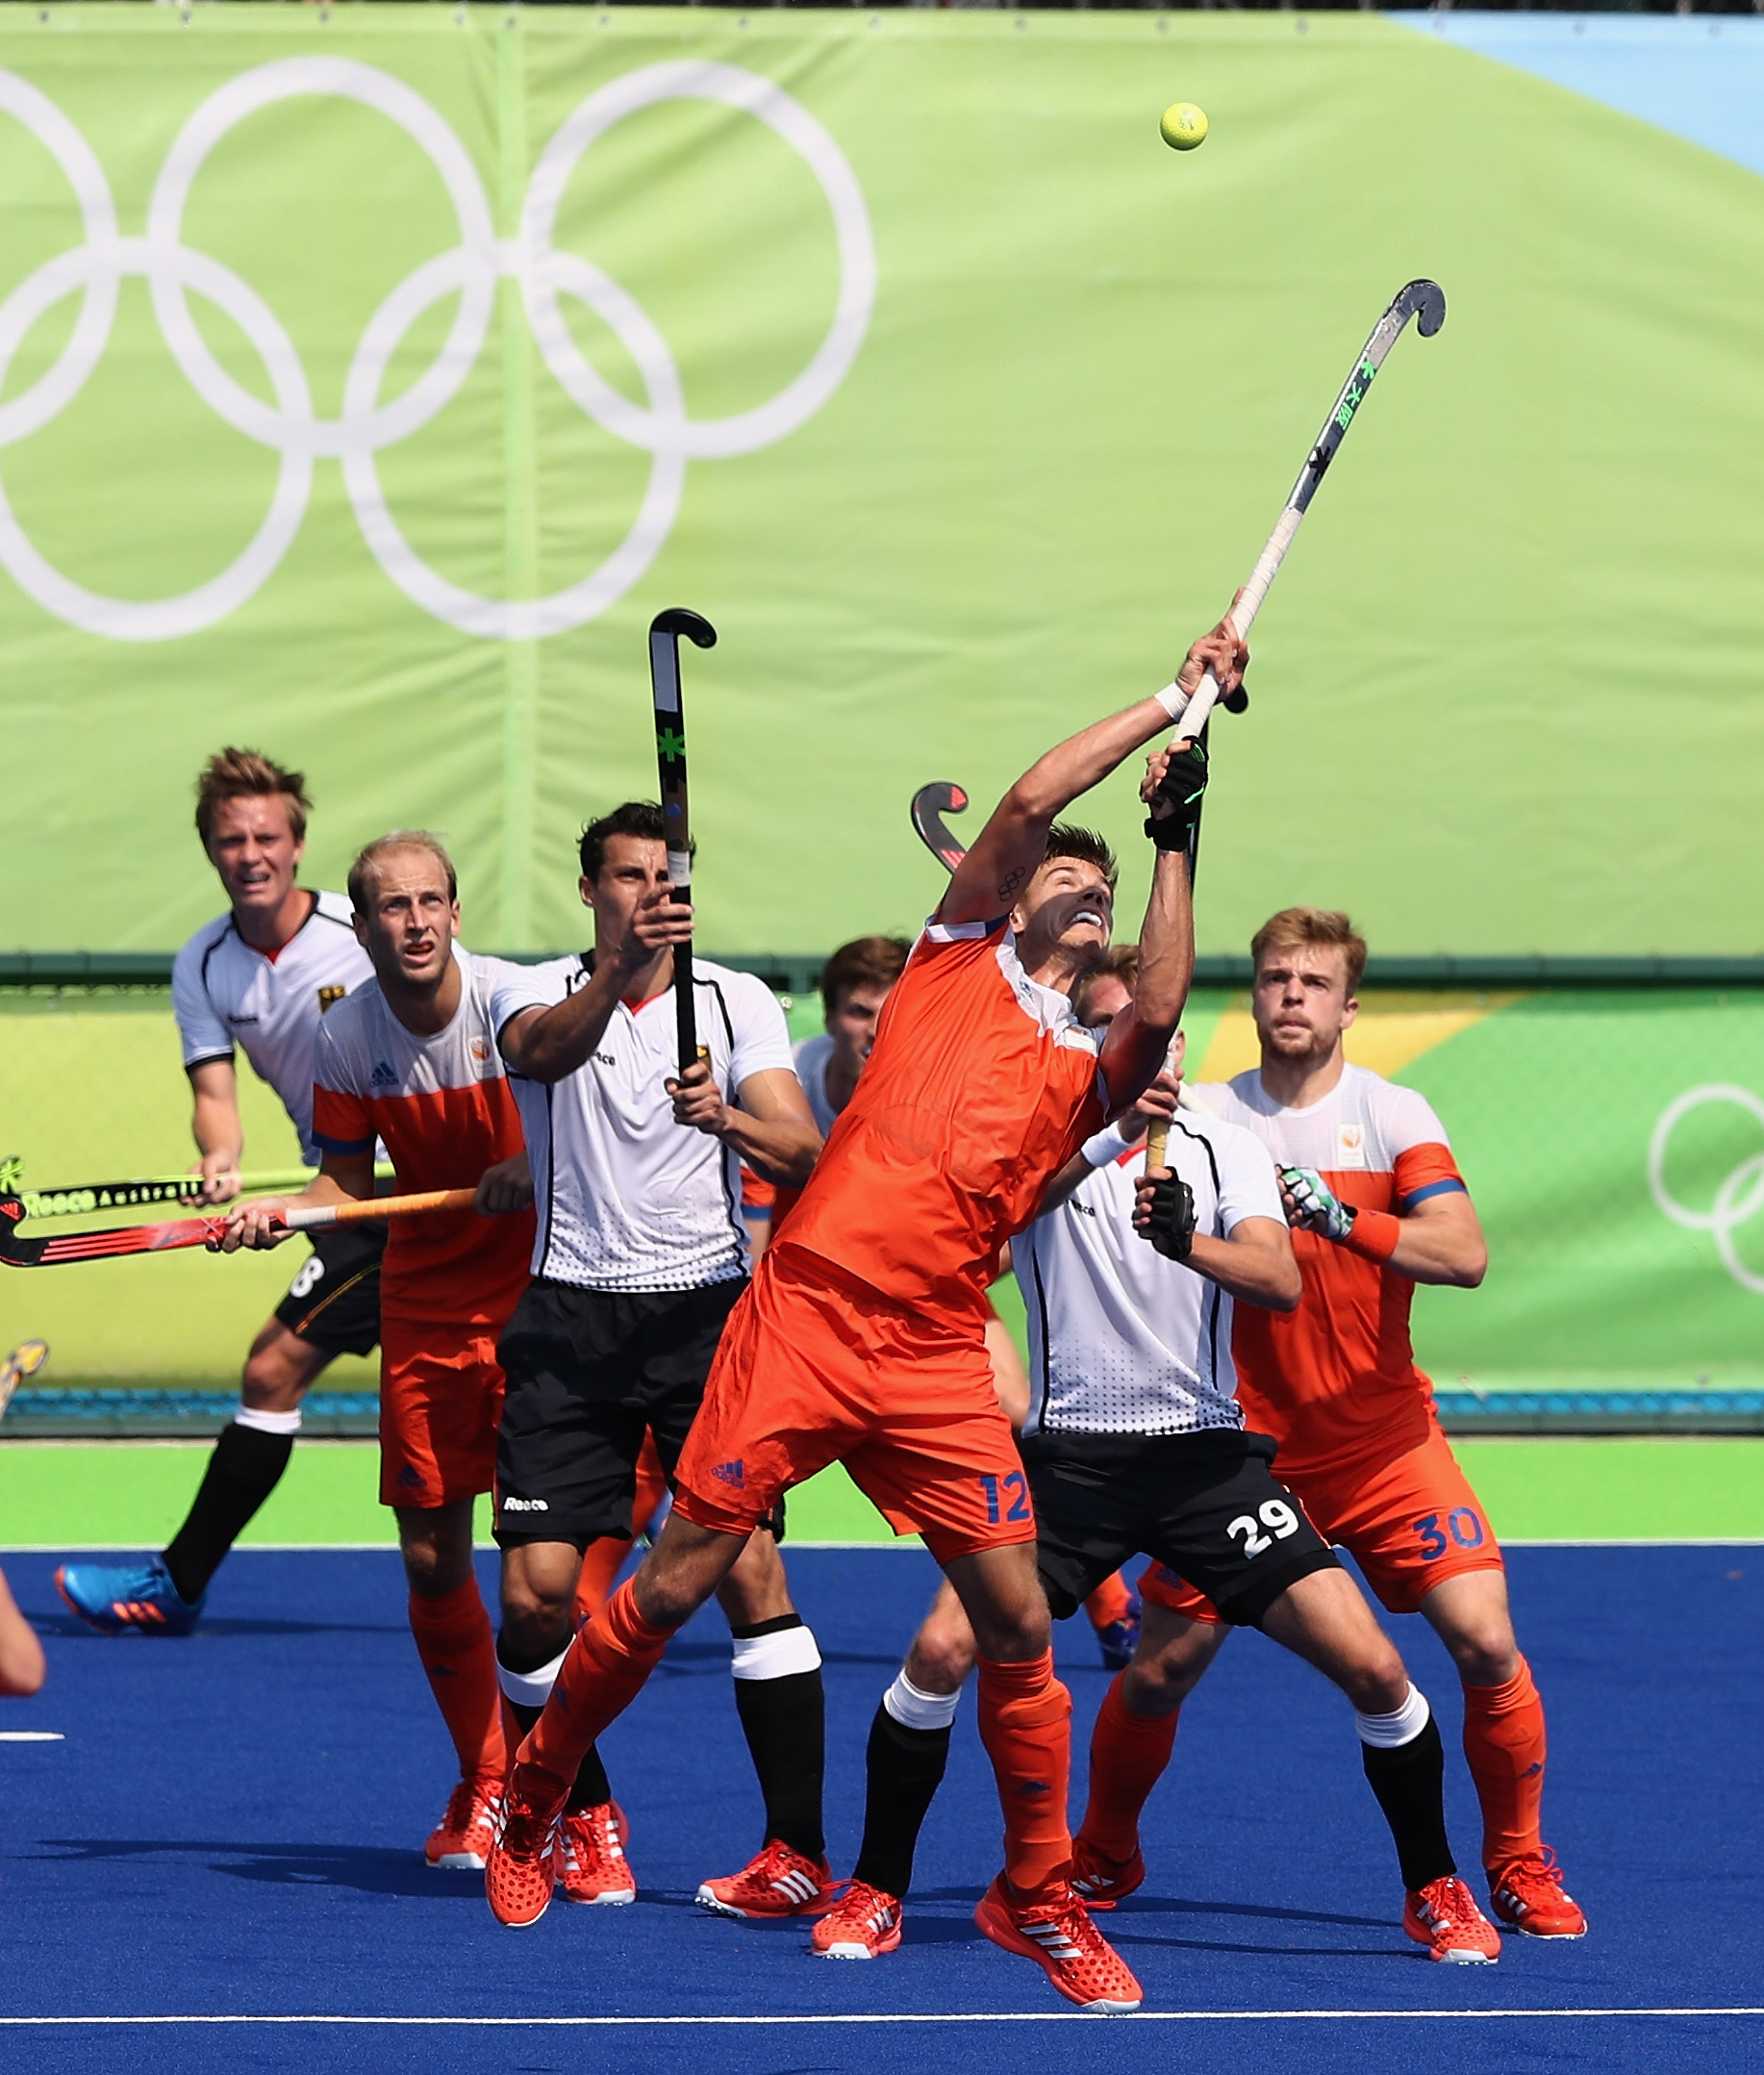 RIO DE JANEIRO, BRAZIL - AUGUST 18: Sander de Wijn of the Netherlands reaches for the ball during the Men's Bronze Medal match between the Netherlands and Germany on Day 13 of the Rio 2016 Olympic Games held at the Olympic Hockey Centre on August 18, 2016 in Rio de Janeiro, Brazil. (Photo by David Rogers/Getty Images)